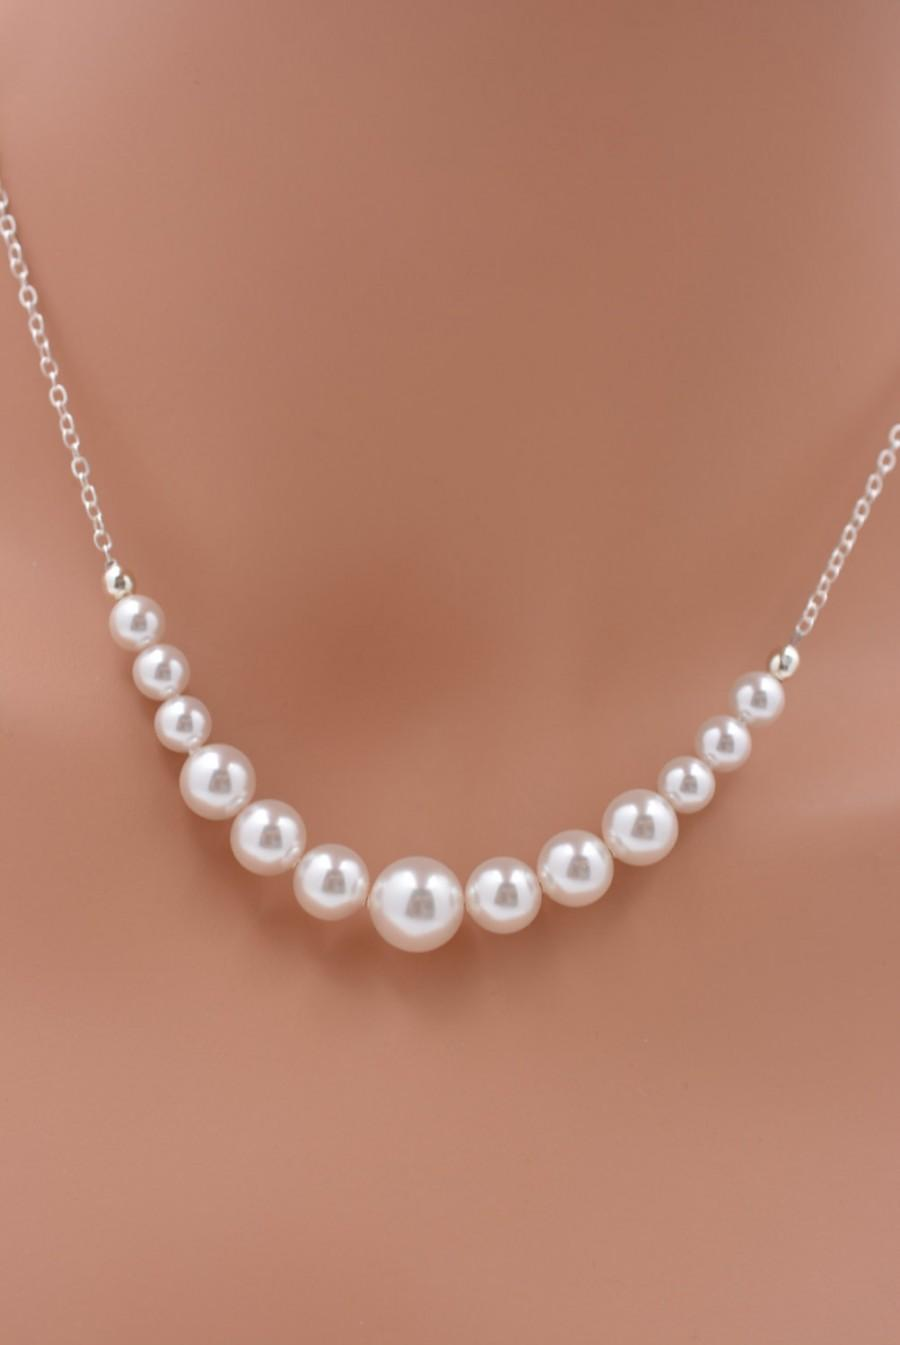 Mariage - Bridal Pearl Backdrop Necklace, Pearl Strand Necklace, Pearl Bridal Necklace, Wedding Necklace - Real Sterling Silver Necklace 0237